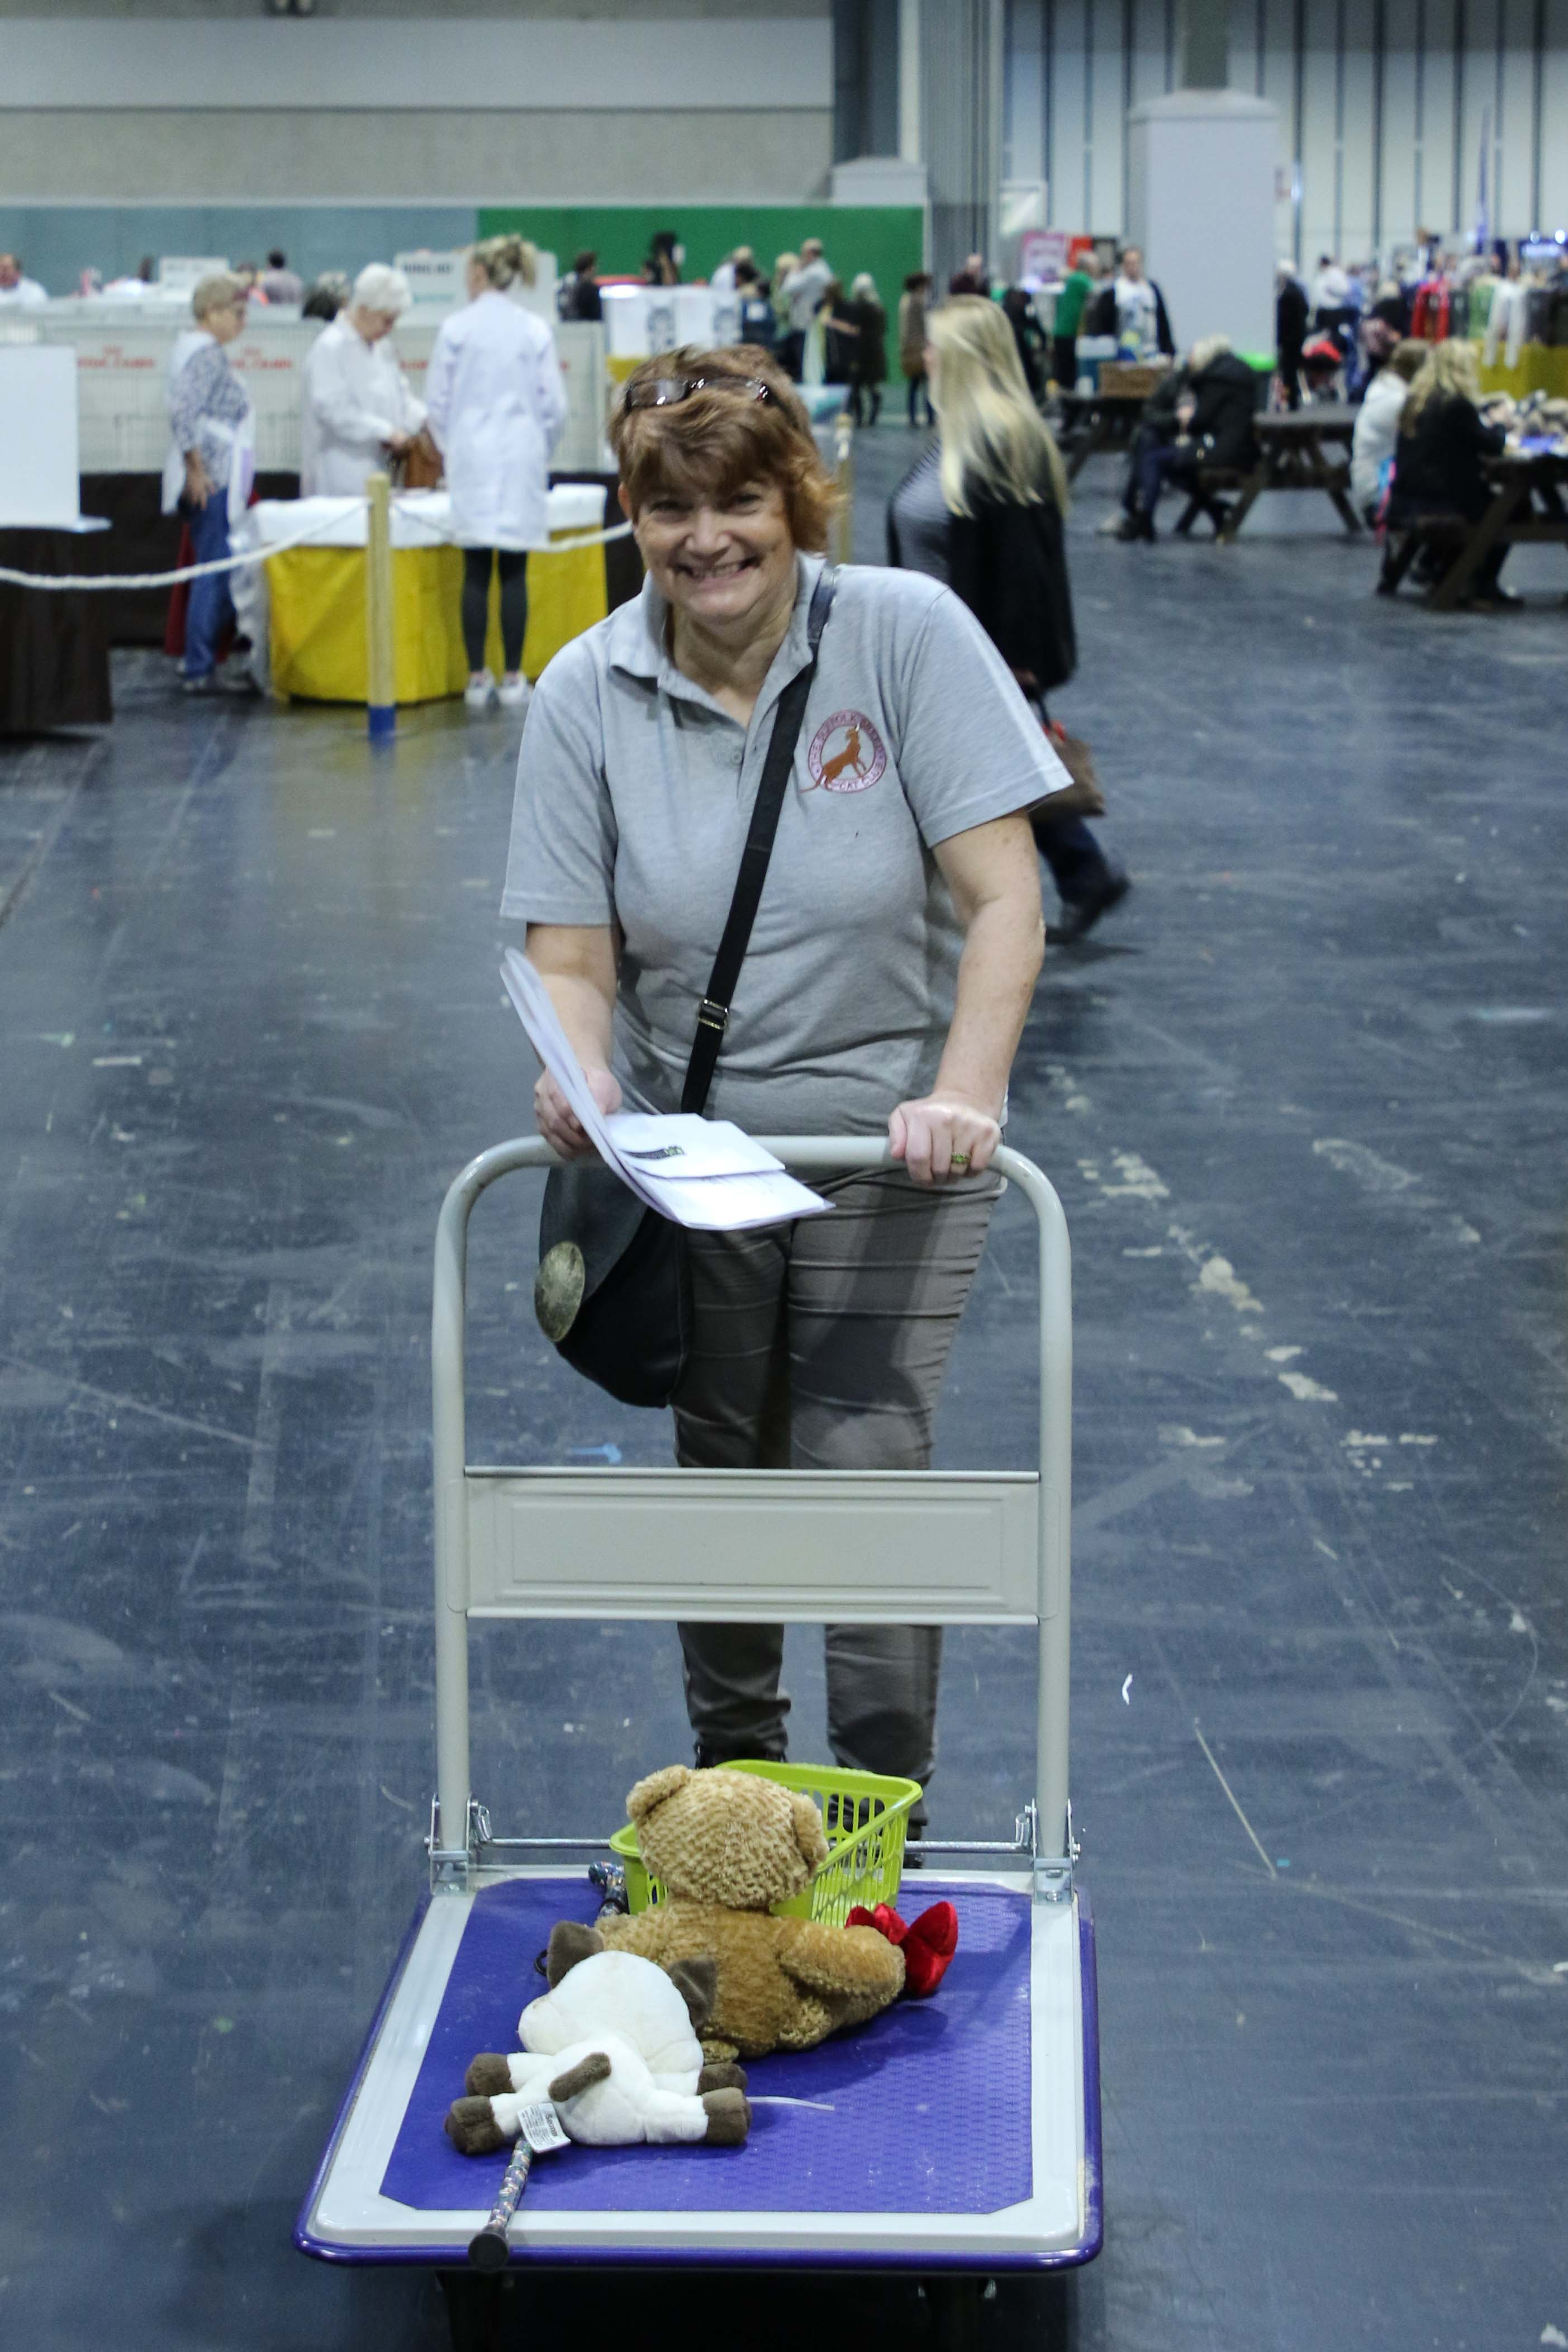 Linda working hard (teddies!)